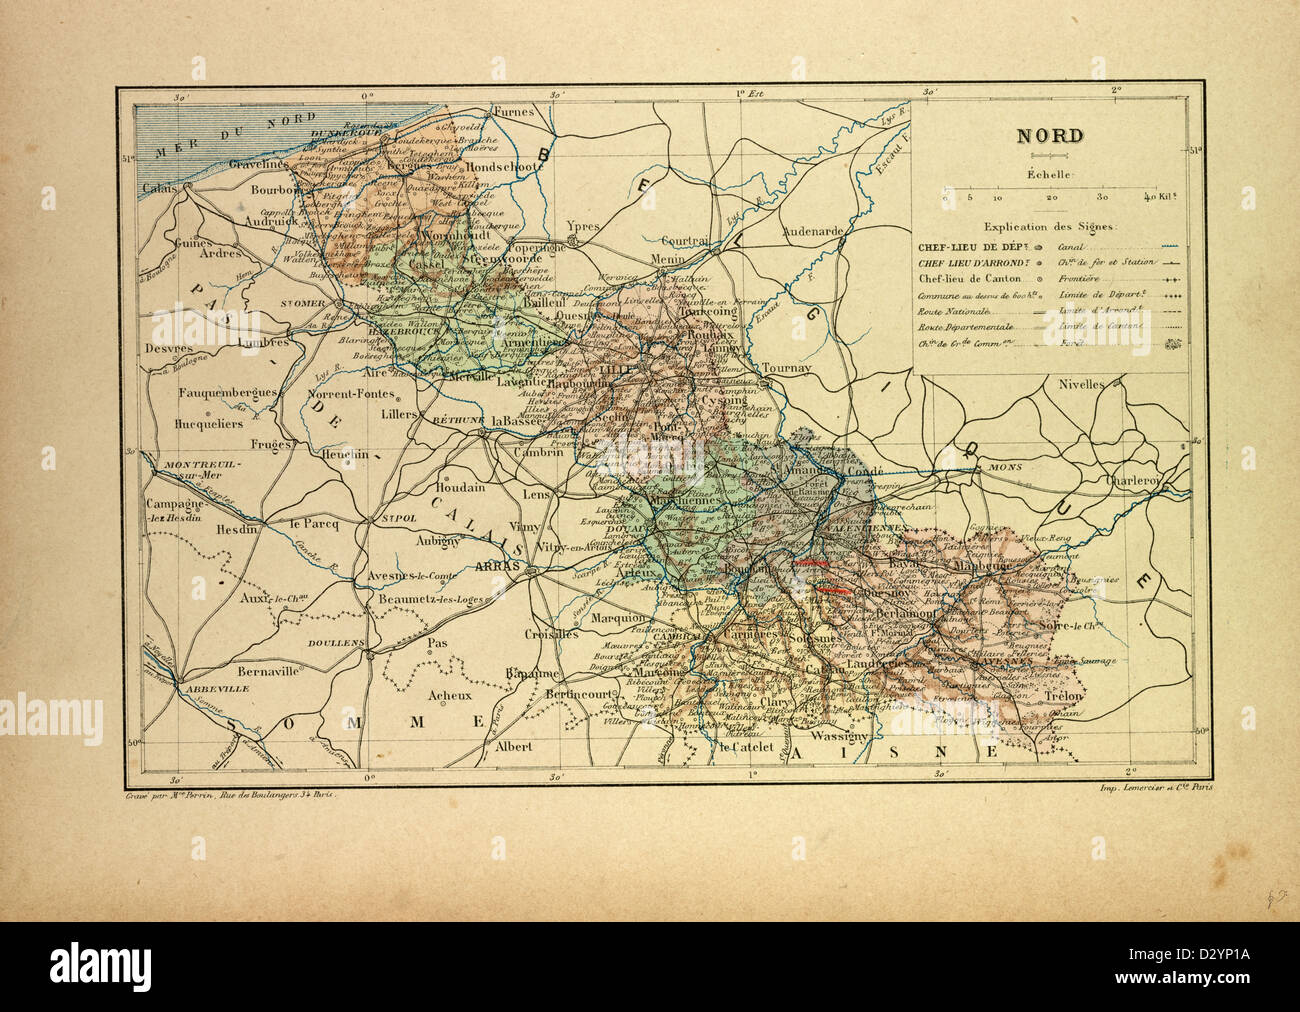 Map Of North West France.Map Of The North West Of France Stock Photo 53470406 Alamy